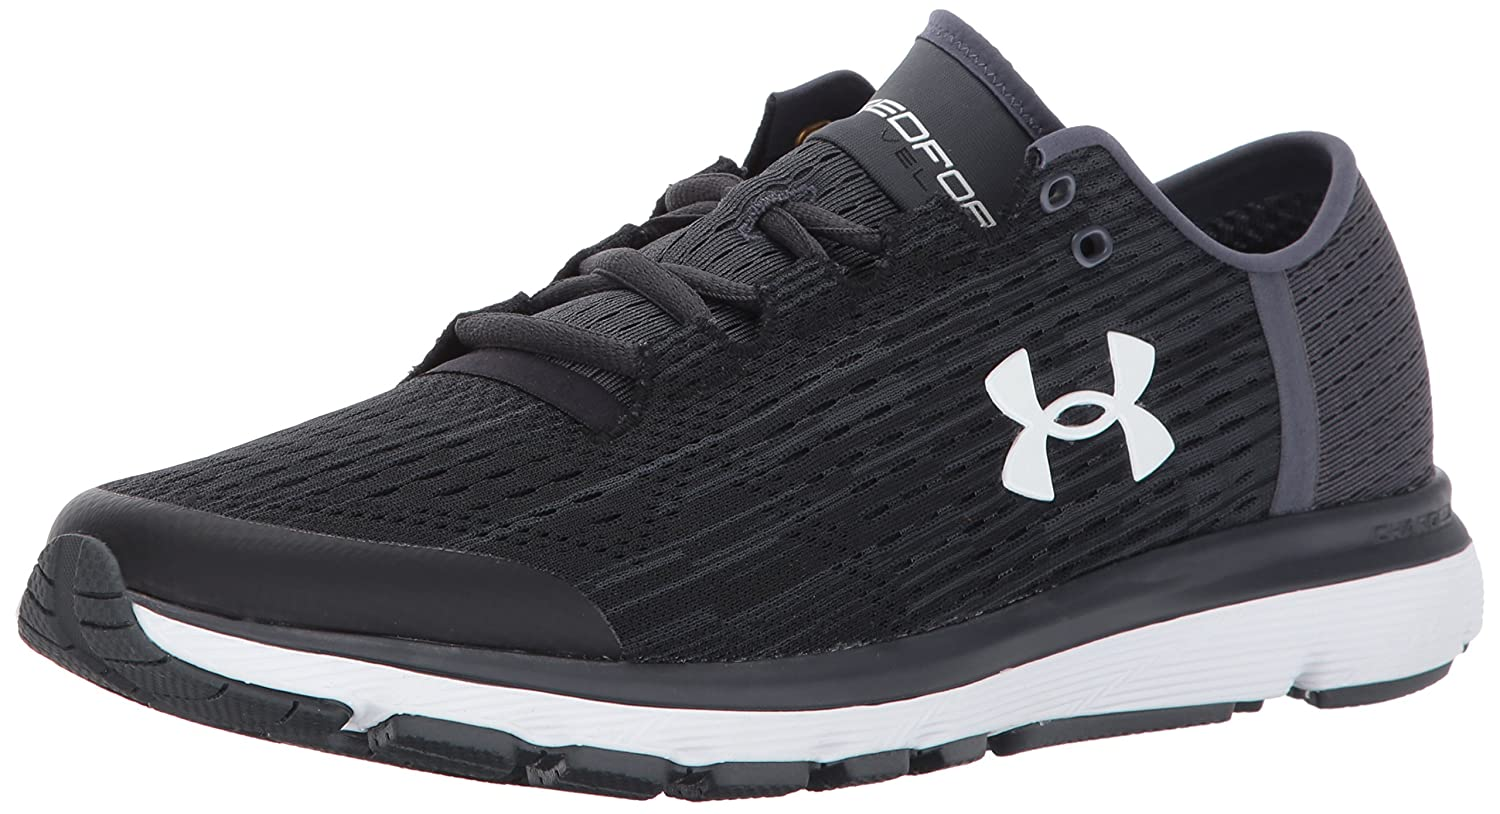 san francisco 87e6b 4740b Under Armour Men's Speedform Velociti Graphic Running Shoe